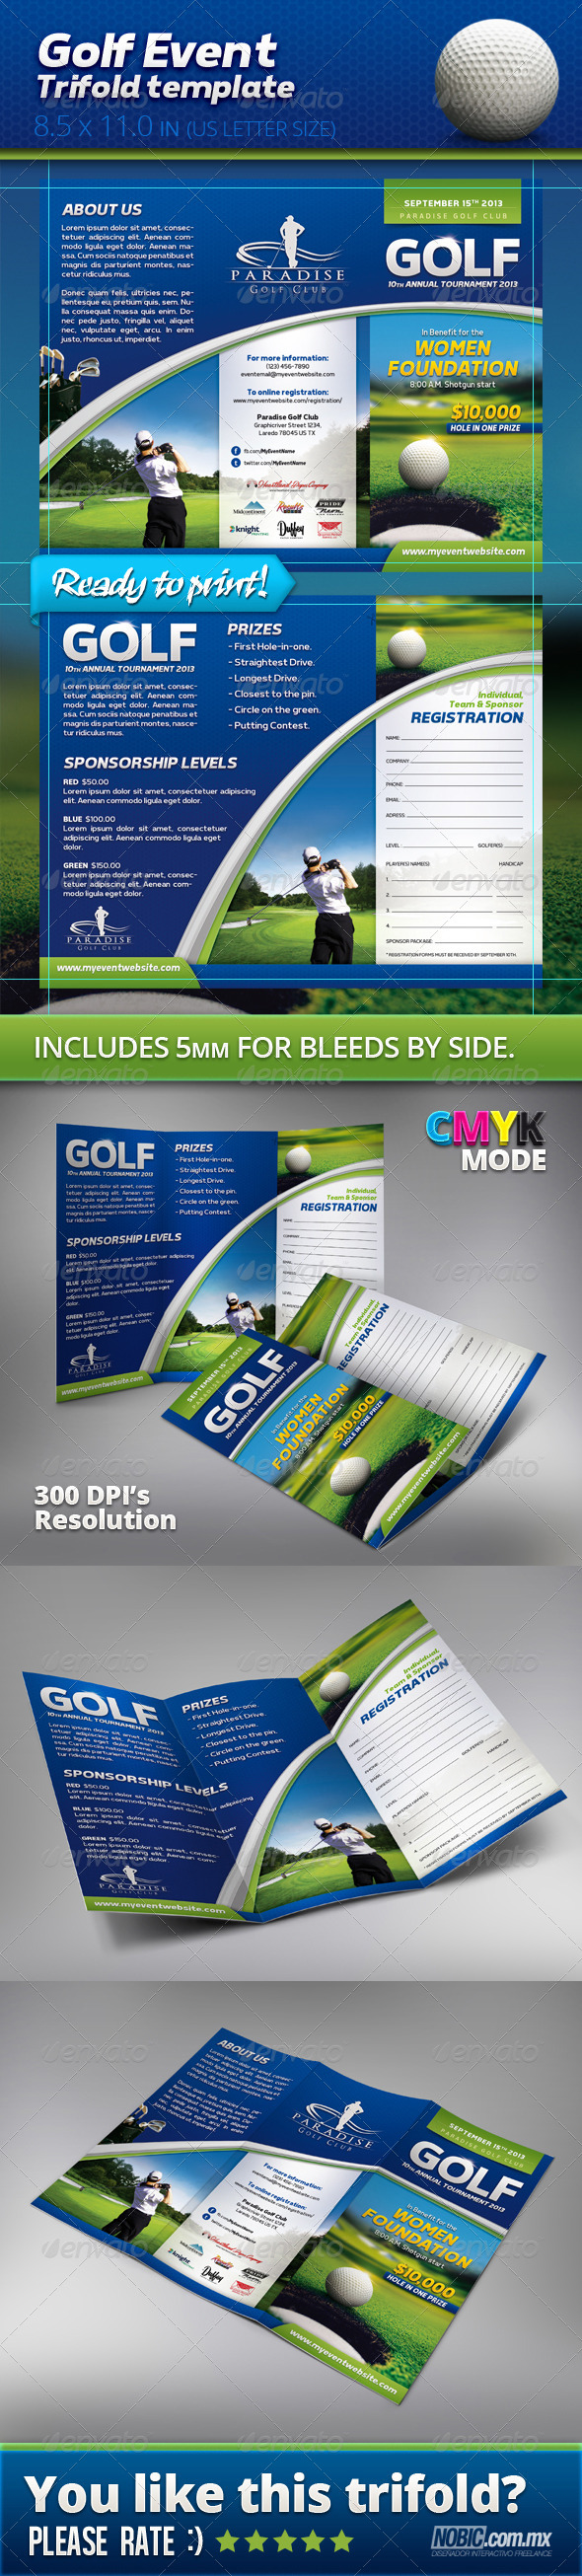 Golf Event Trifold Template - Informational Brochures